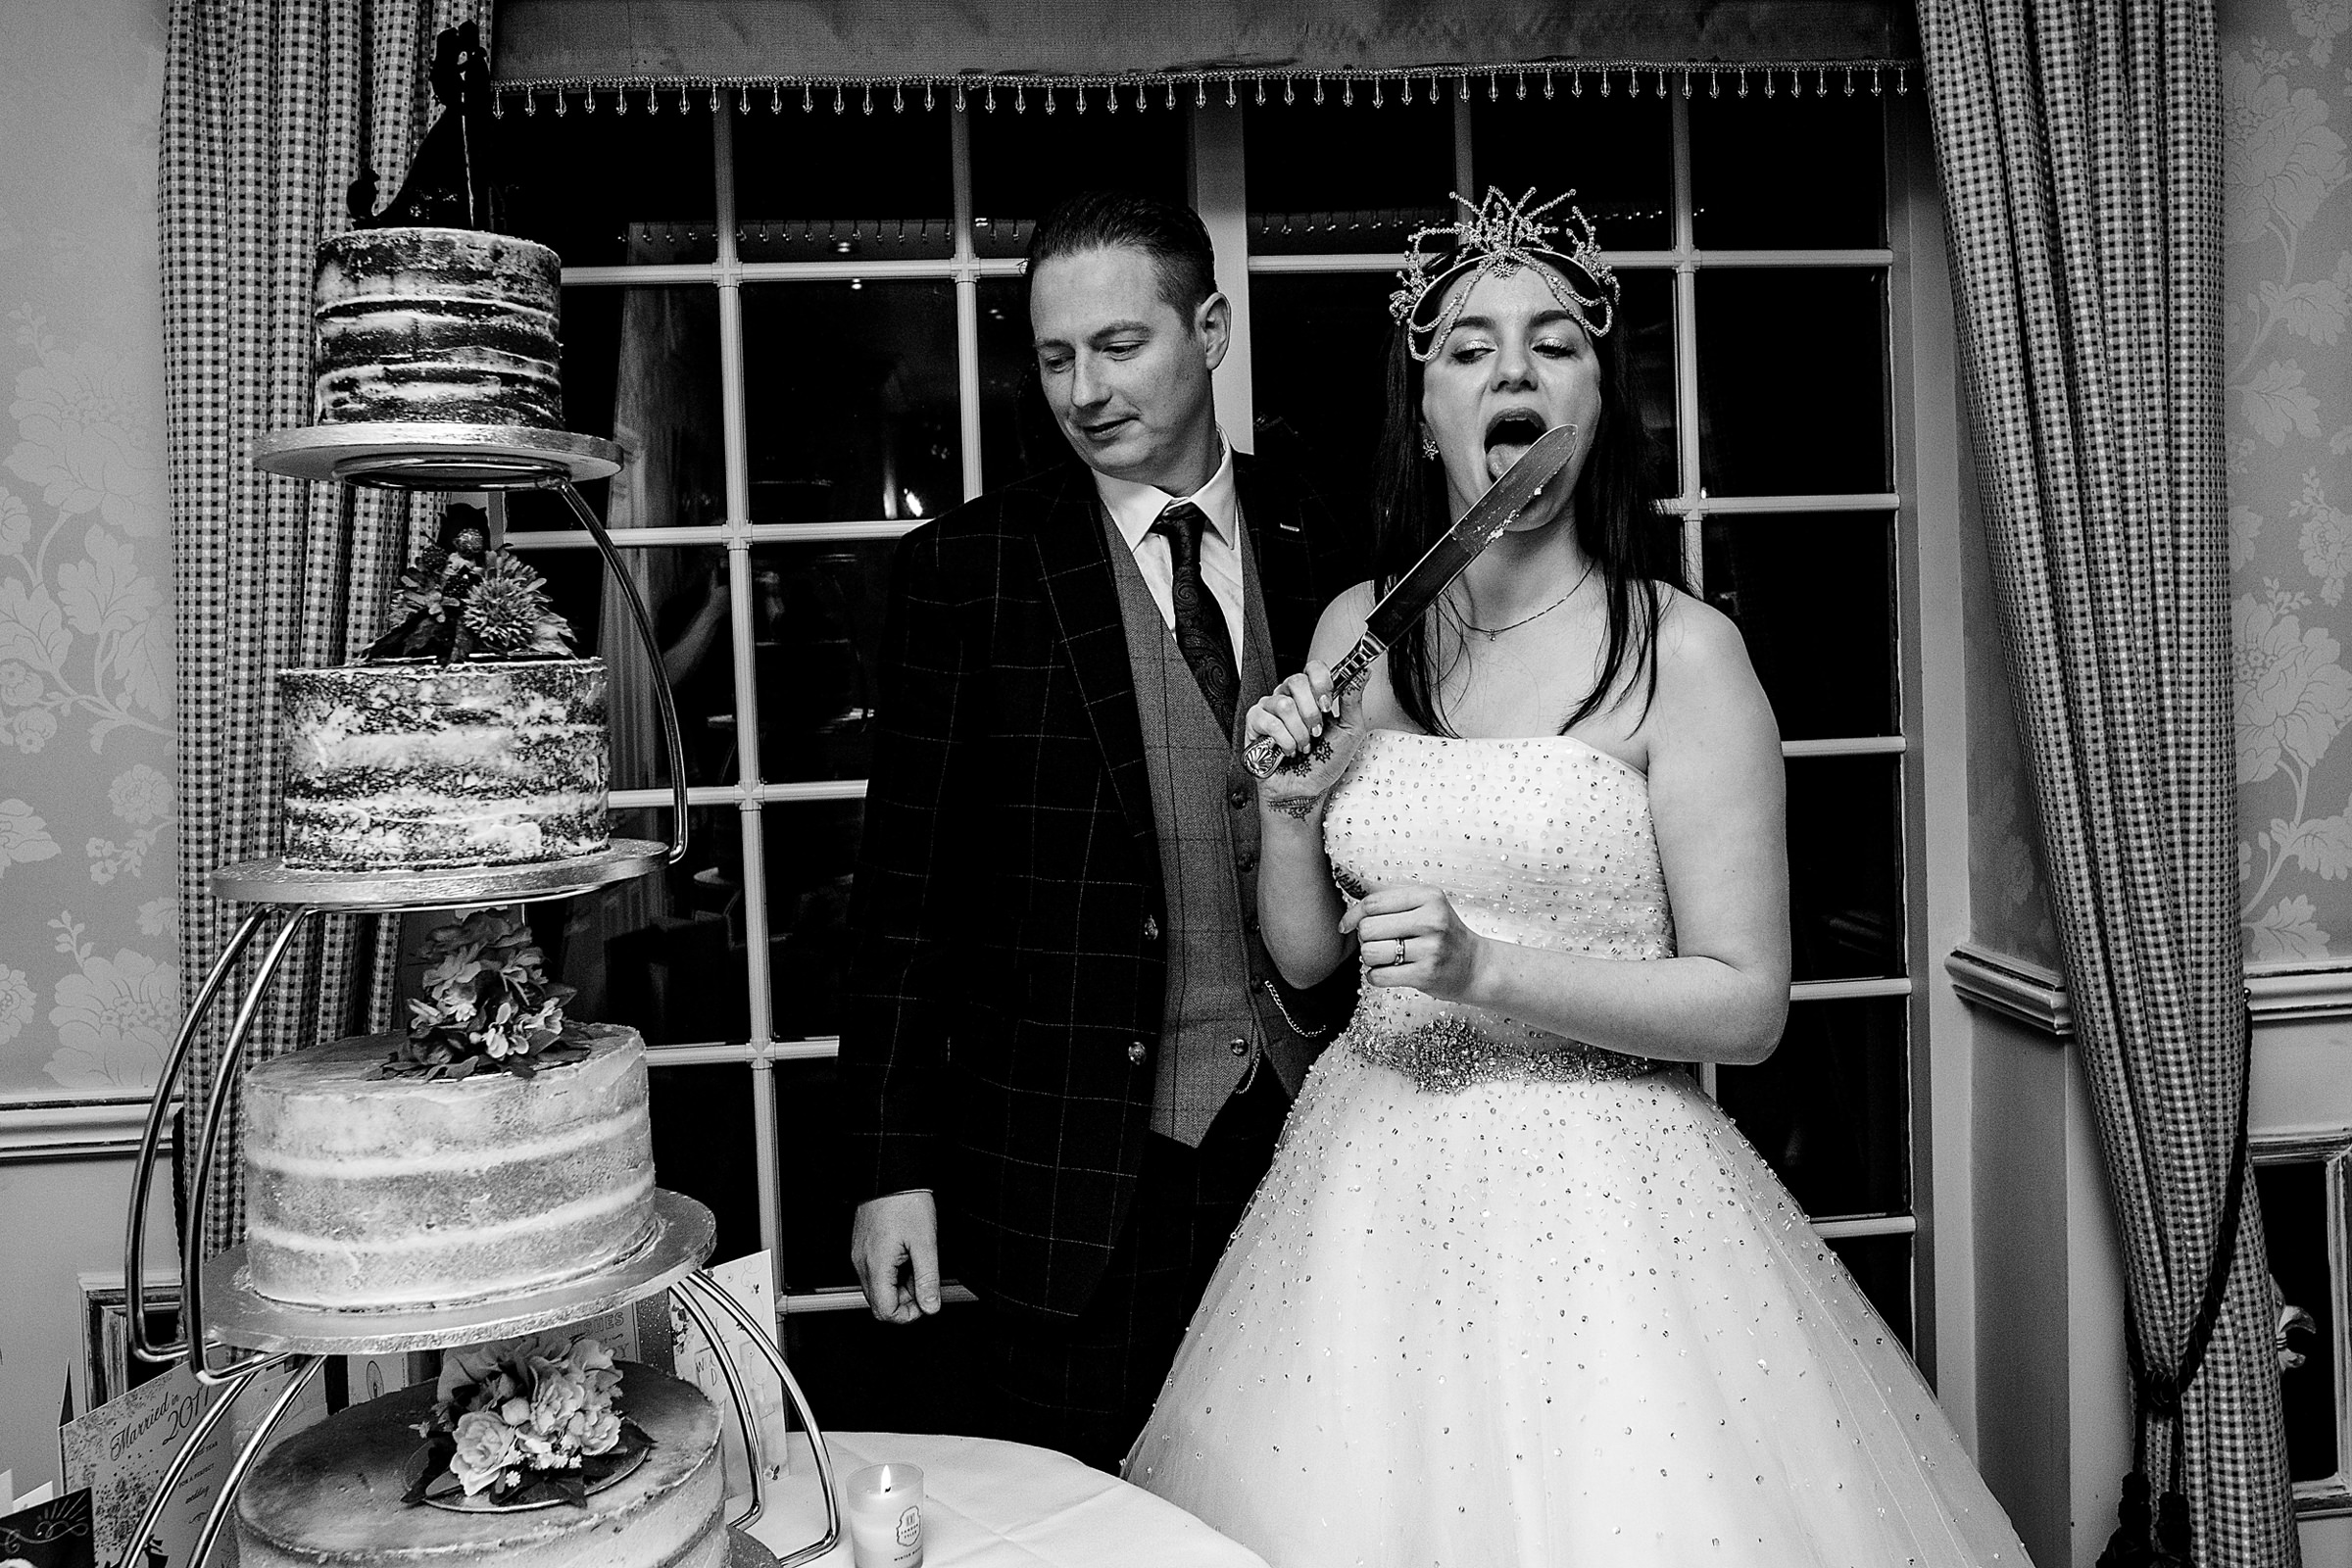 Bride licks the cake knife - photo by Emma + Rich